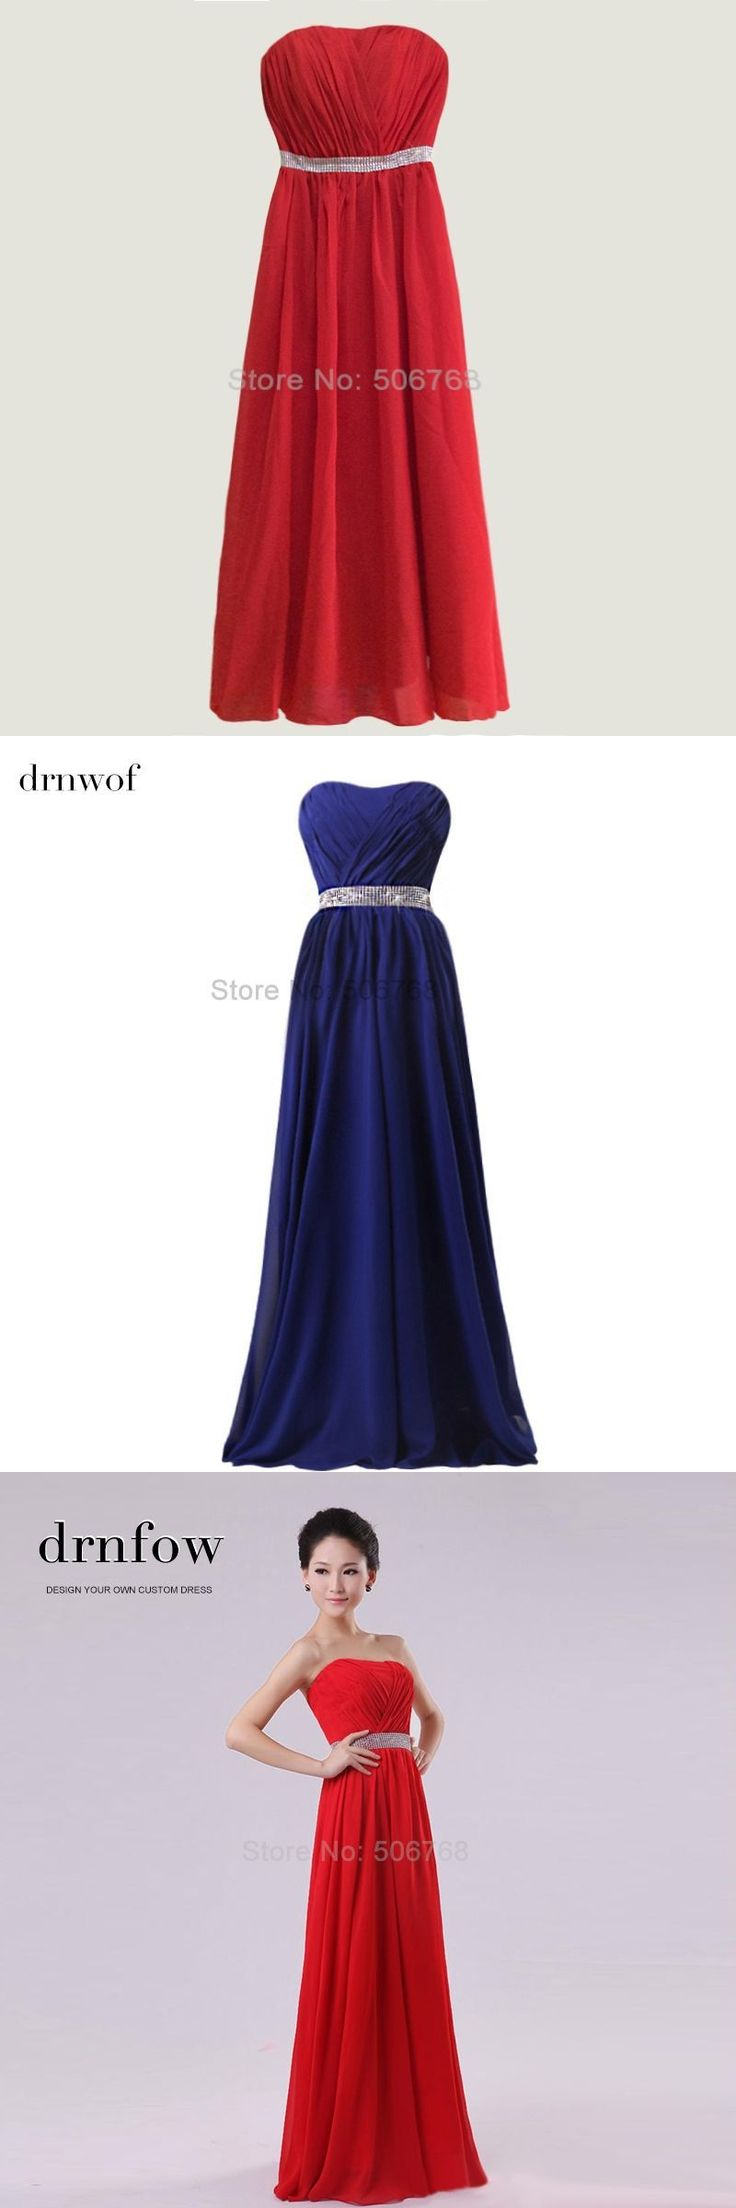 Best 25 homecoming dresses under 50 ideas on pinterest prom 2017 new bridesmaid dresses formal prom maxi strapless chiffon long wedding party red blue white dress ombrellifo Images